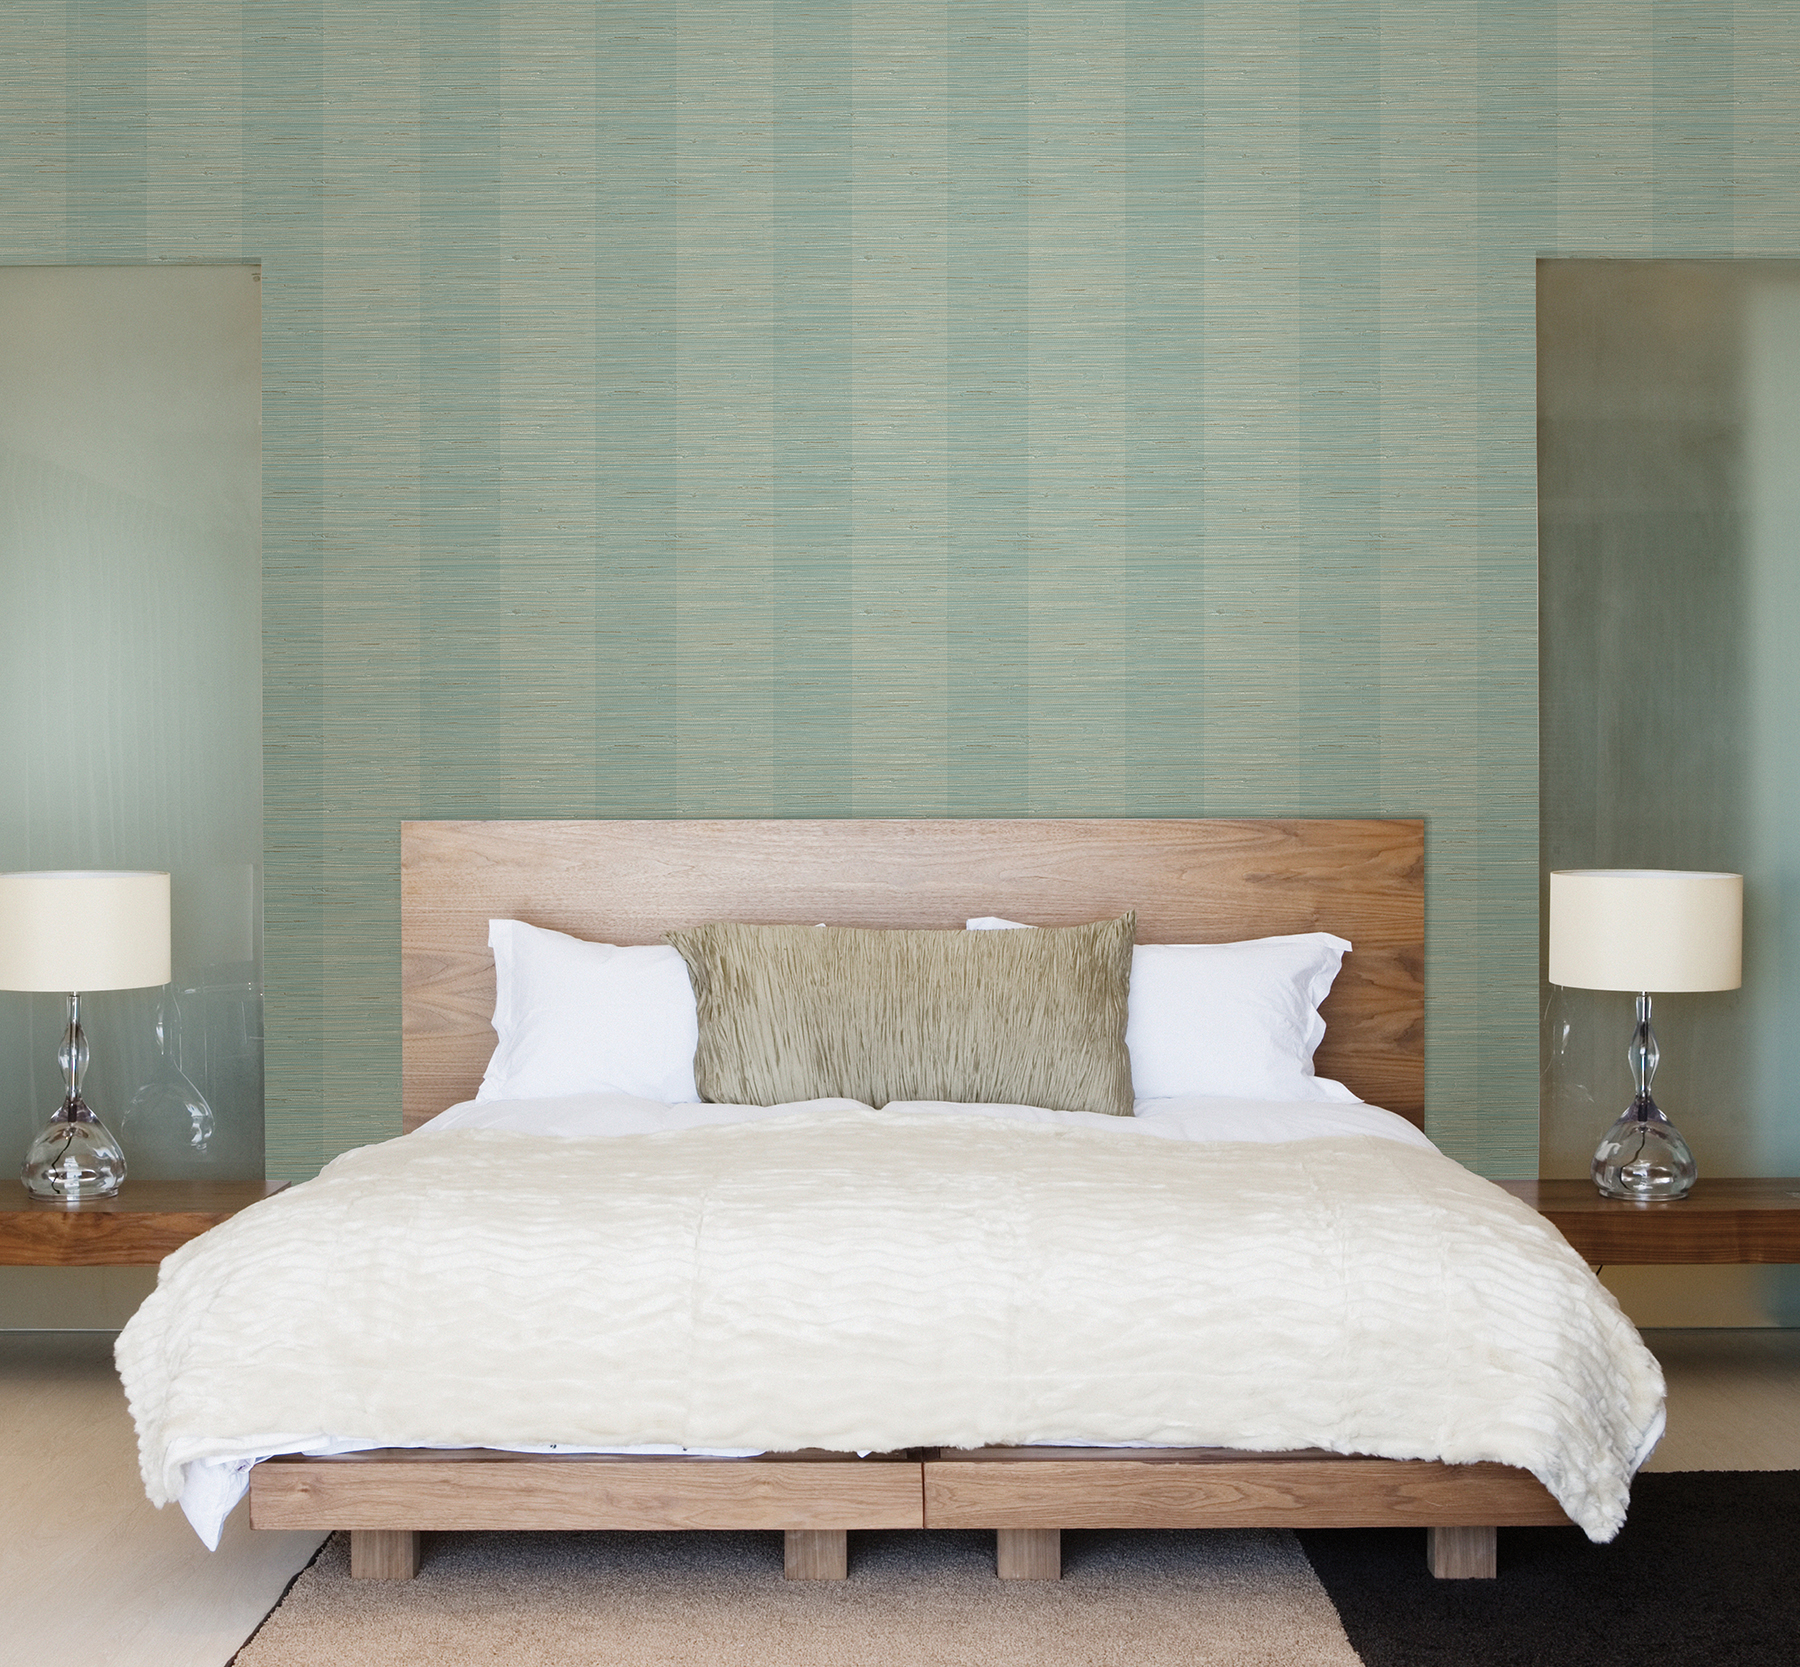 Wallpapering Costs